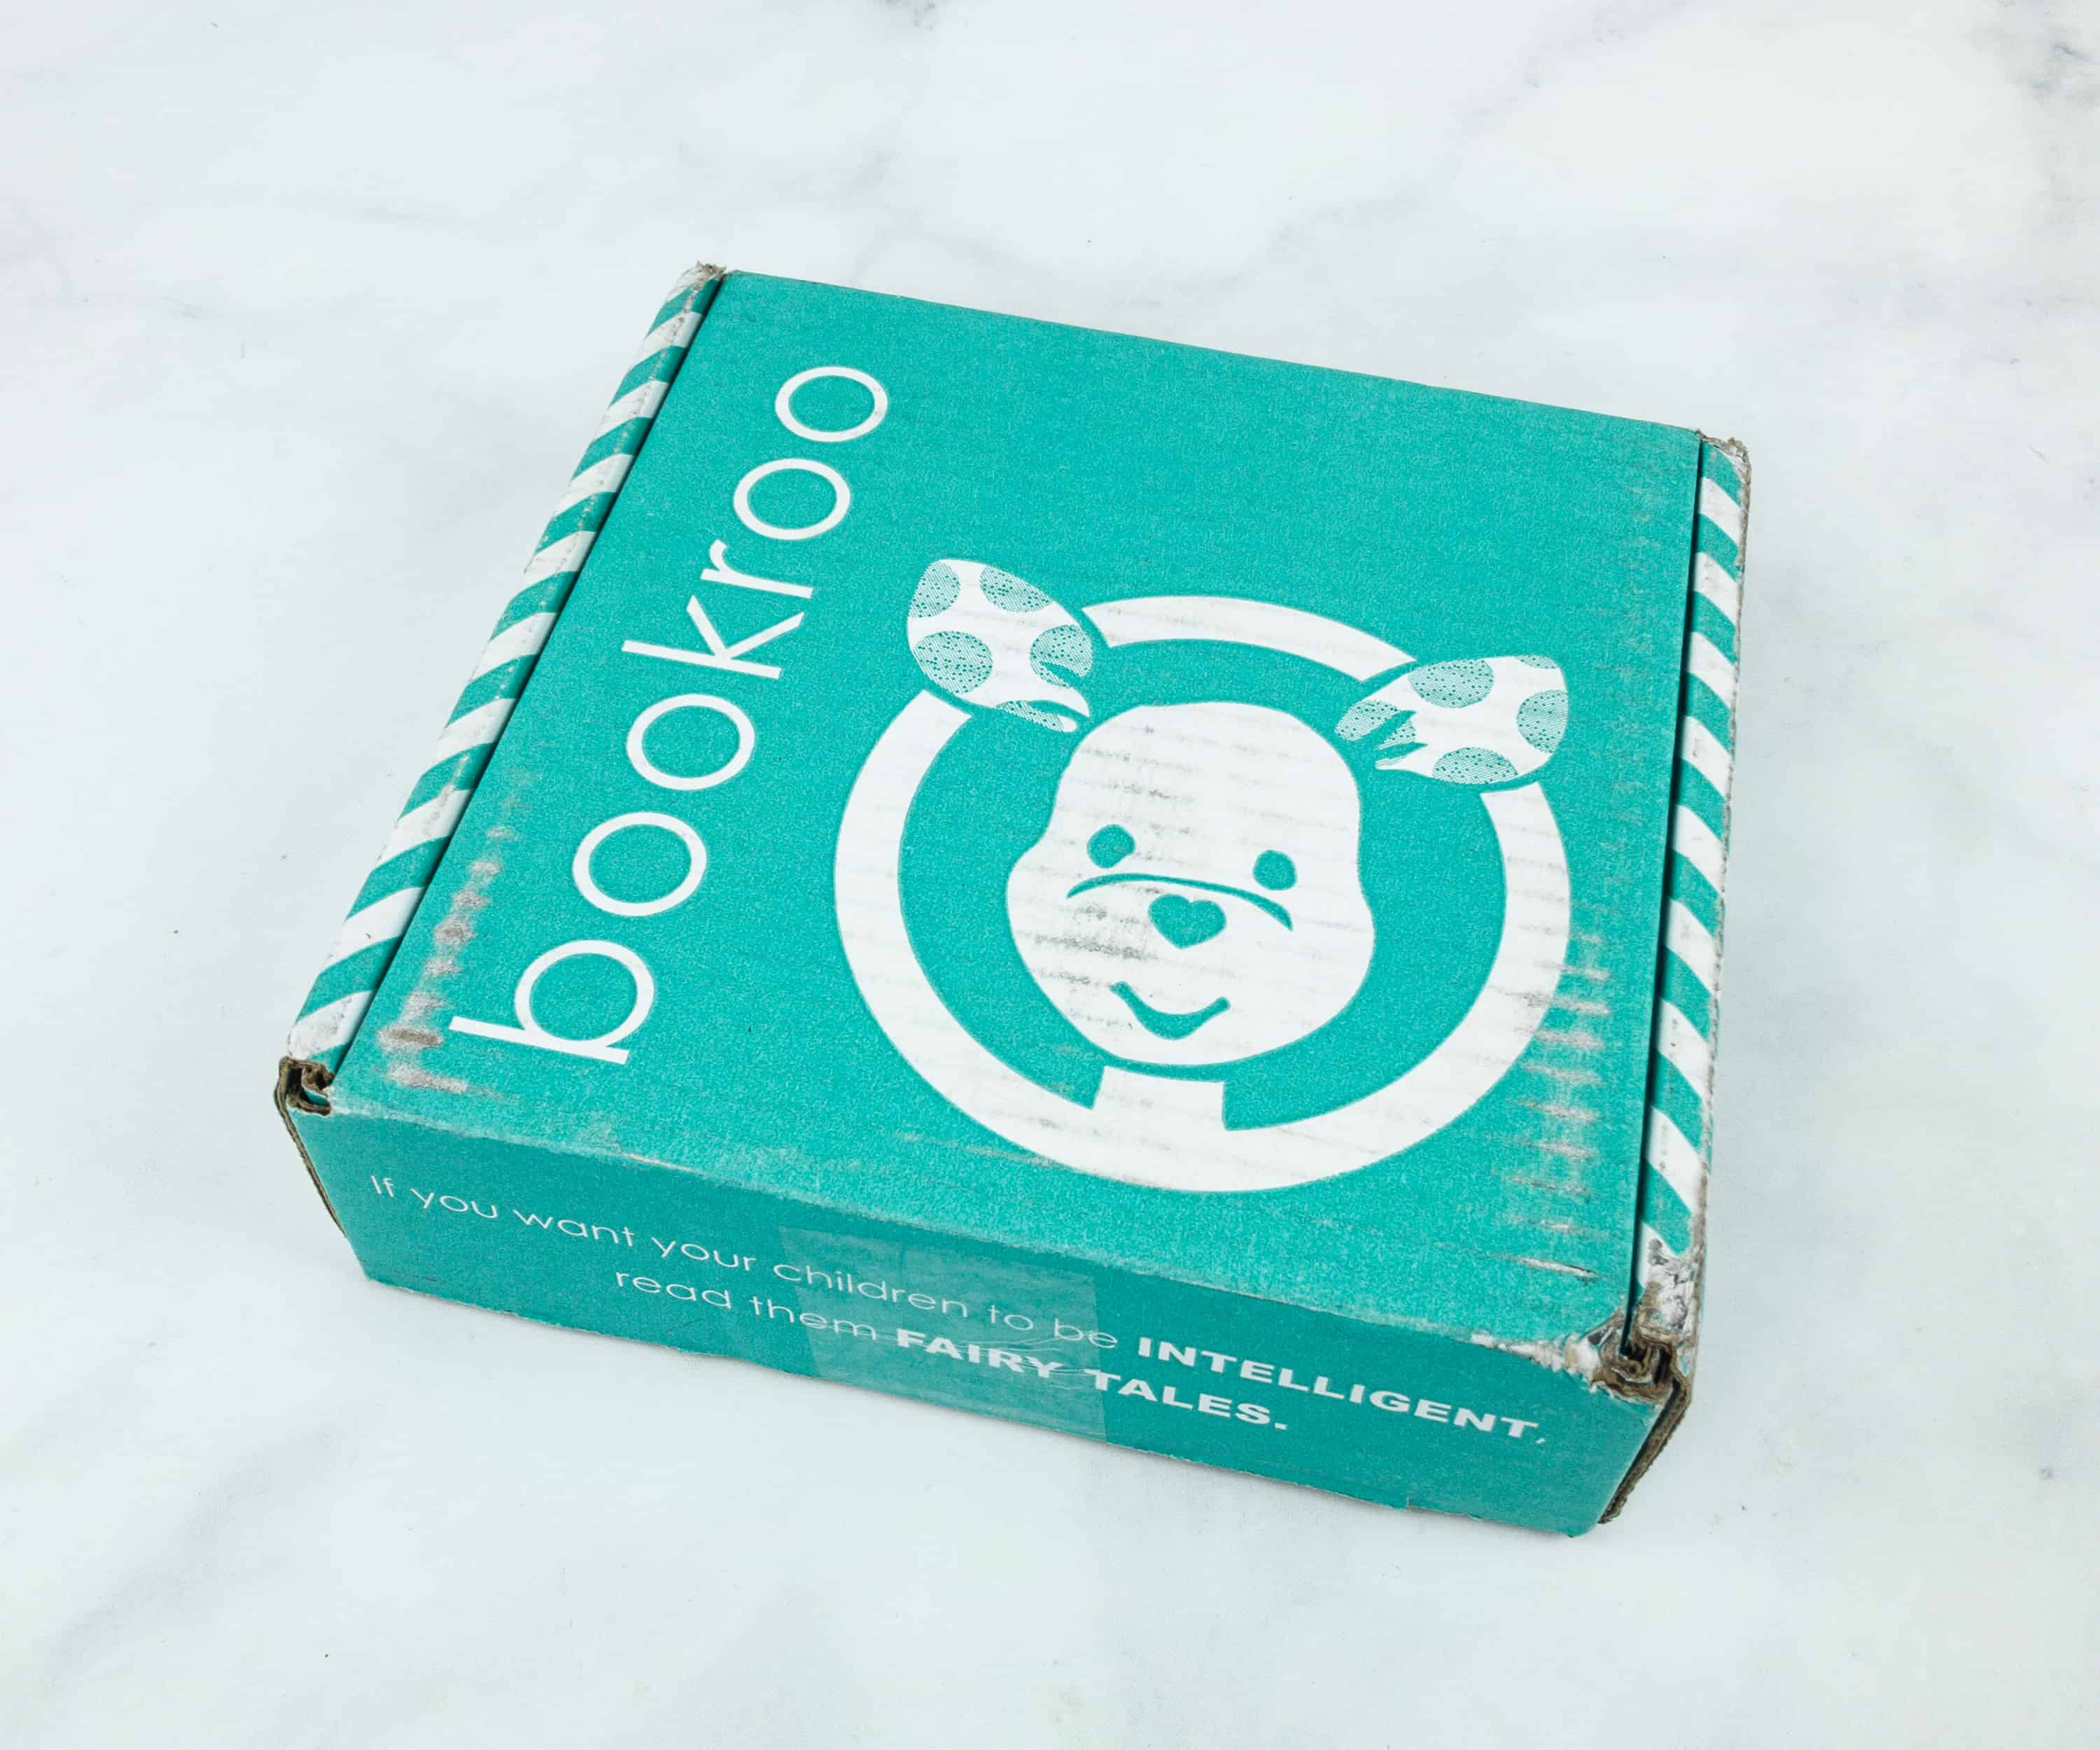 Bookroo December 2018 Subscription Box Review Coupon Board Books